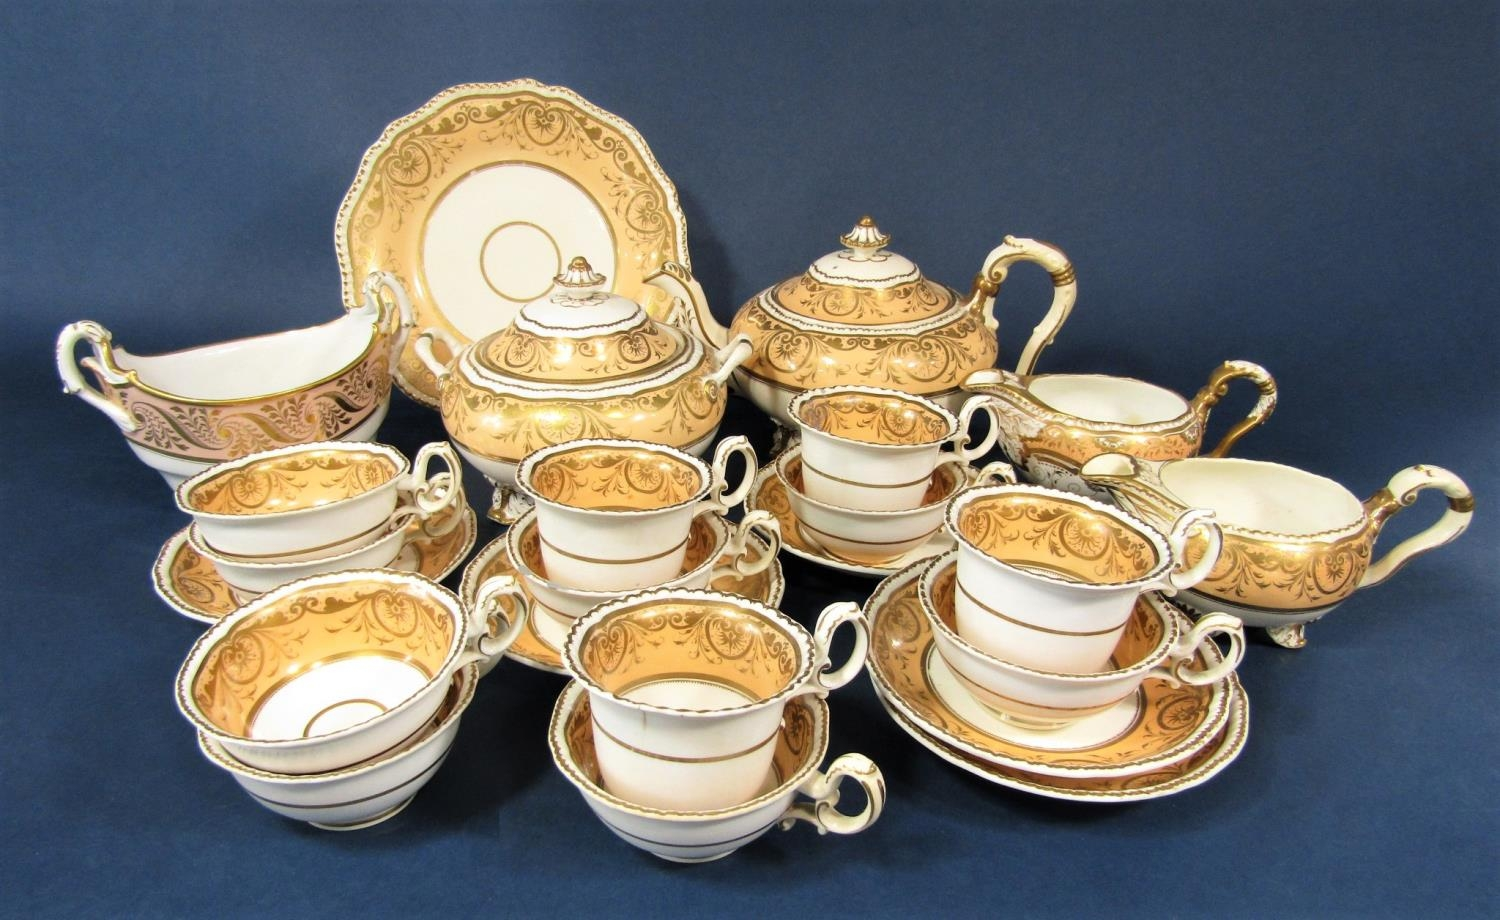 A collection of mid 19th century teawares with gilt scrolling decoration on a peach ground